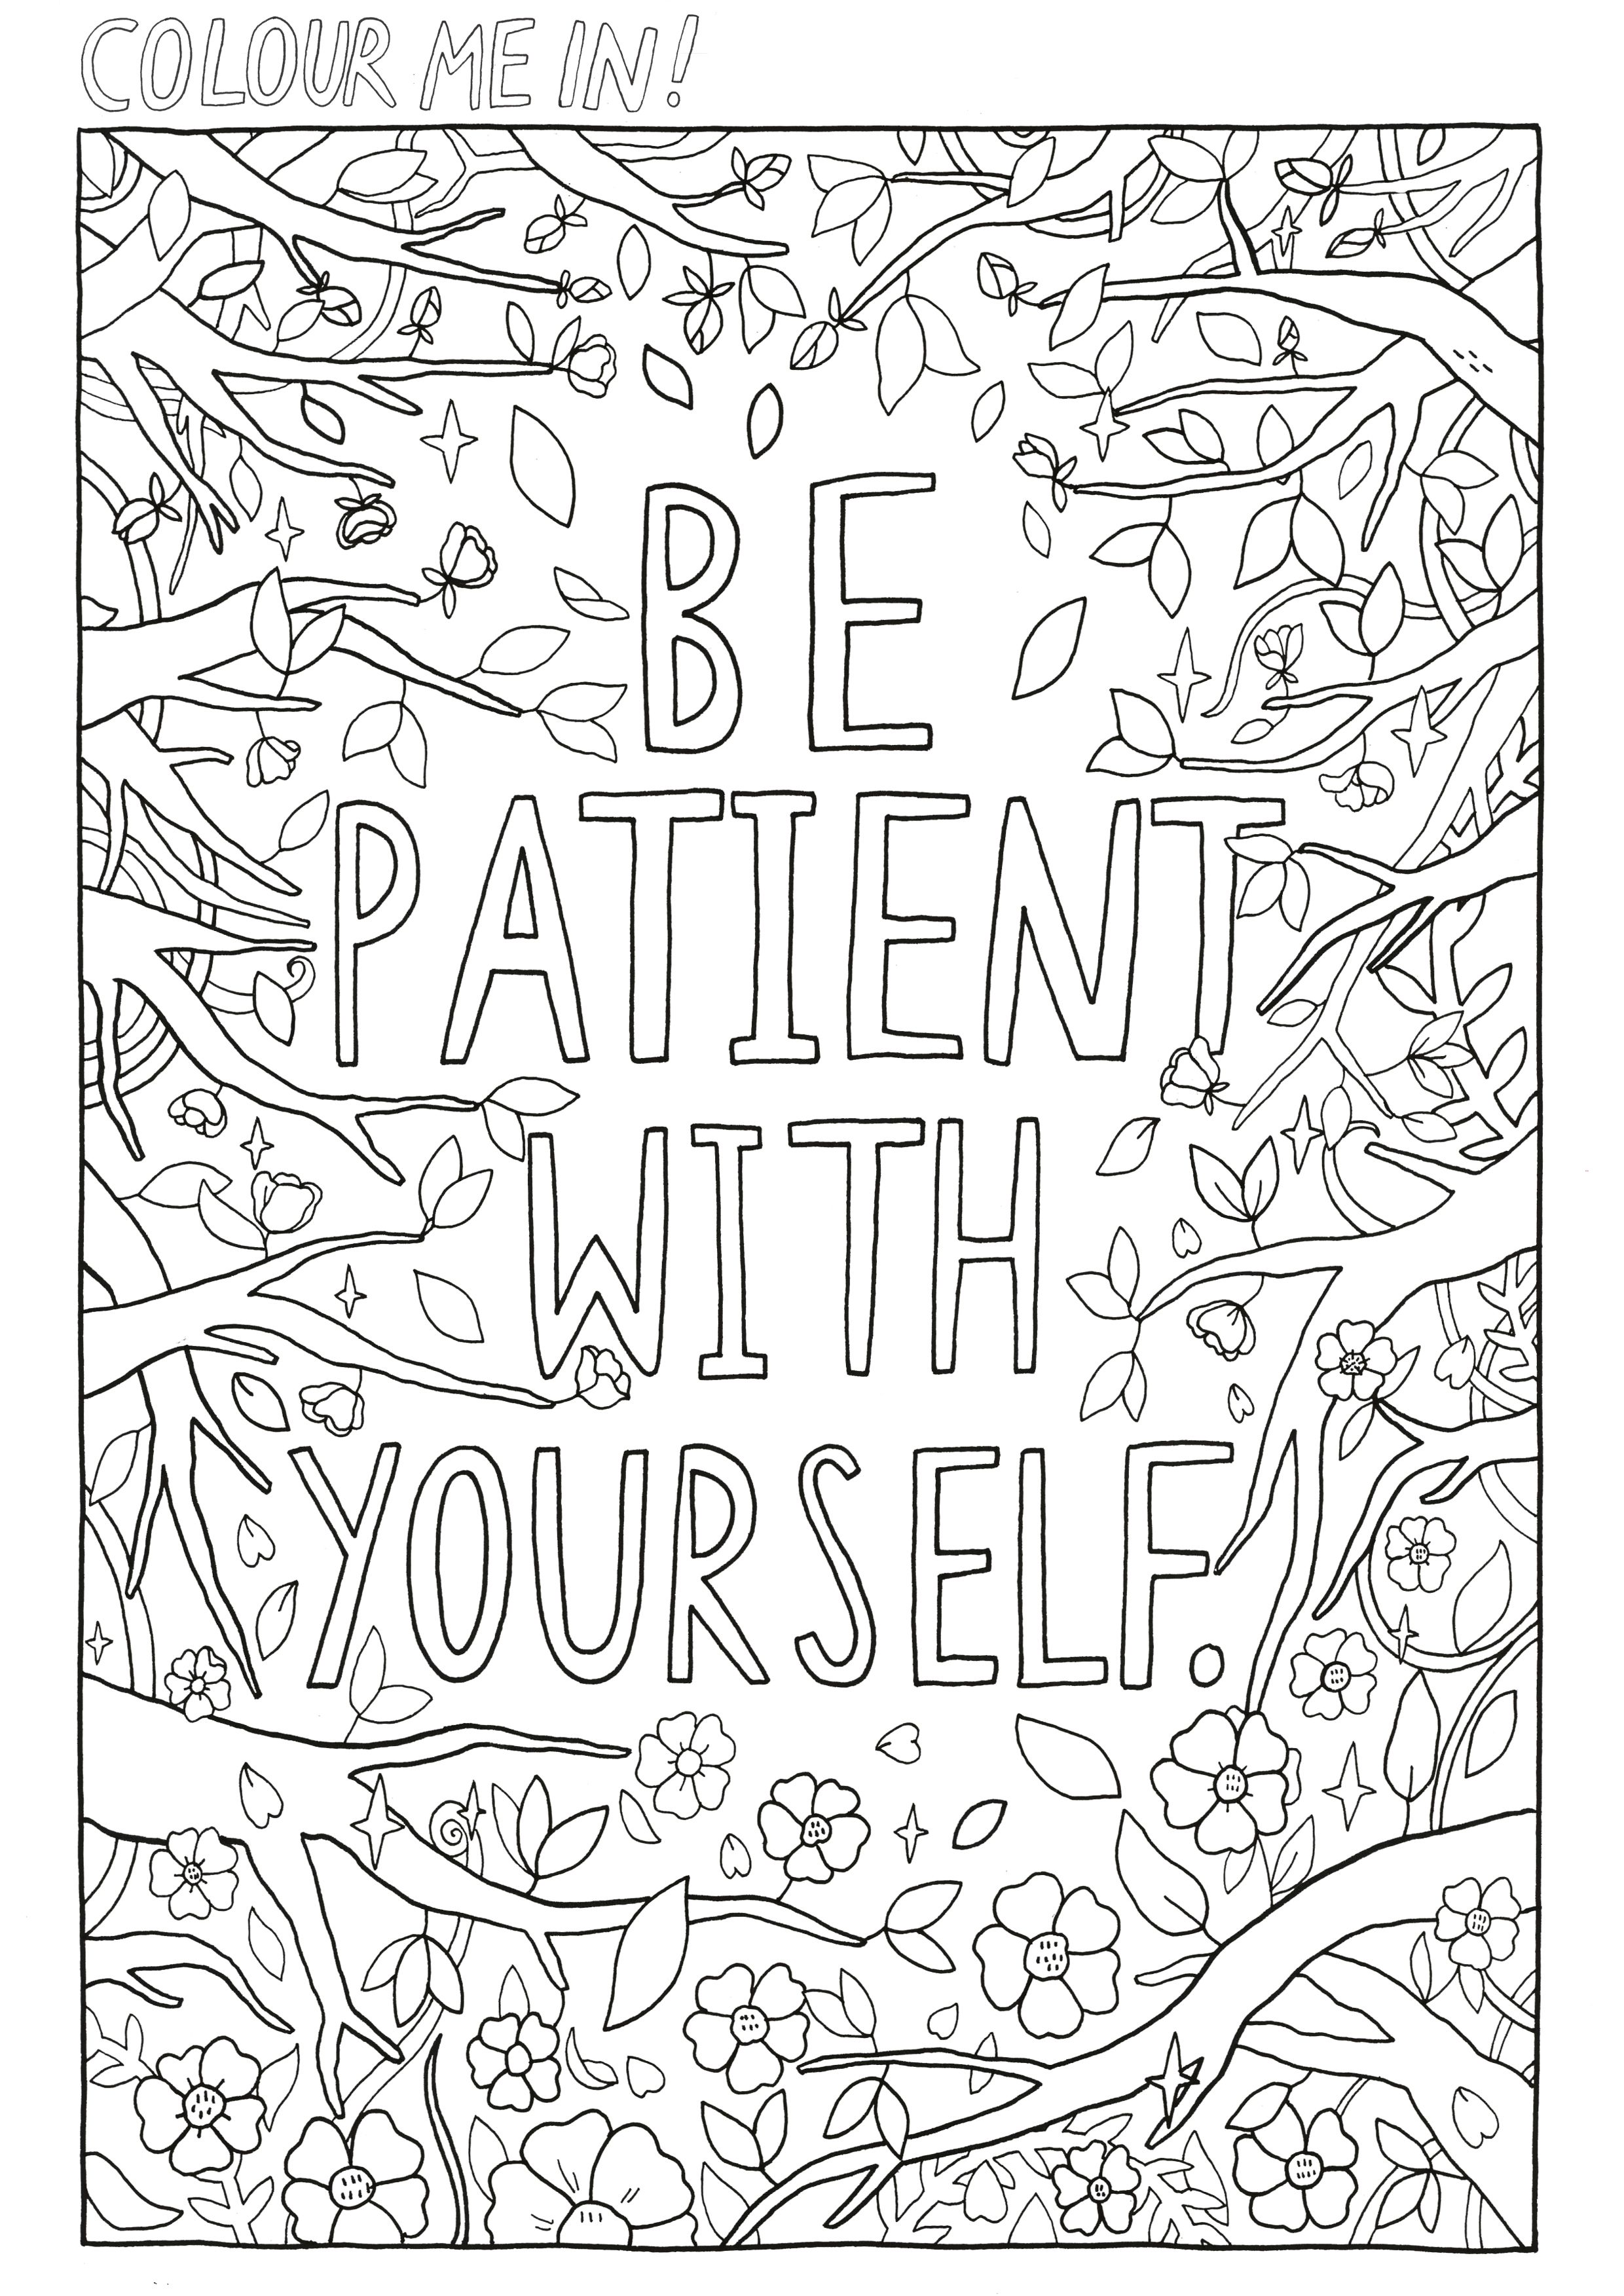 Patience Is Important Print This Out And Colour It In 3